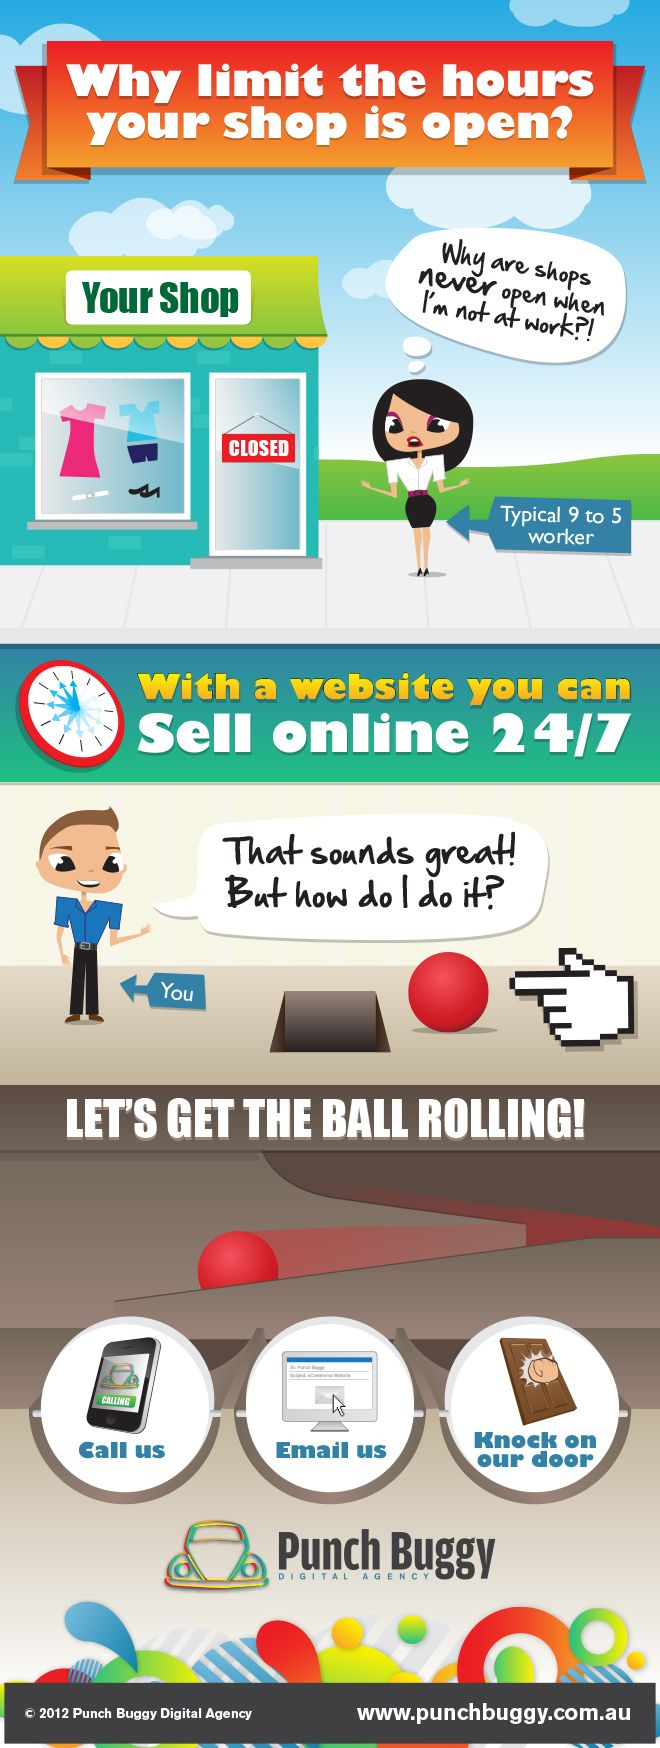 Infographic - Why limit the hours your shop is open? With a website you can sell online 24/7.